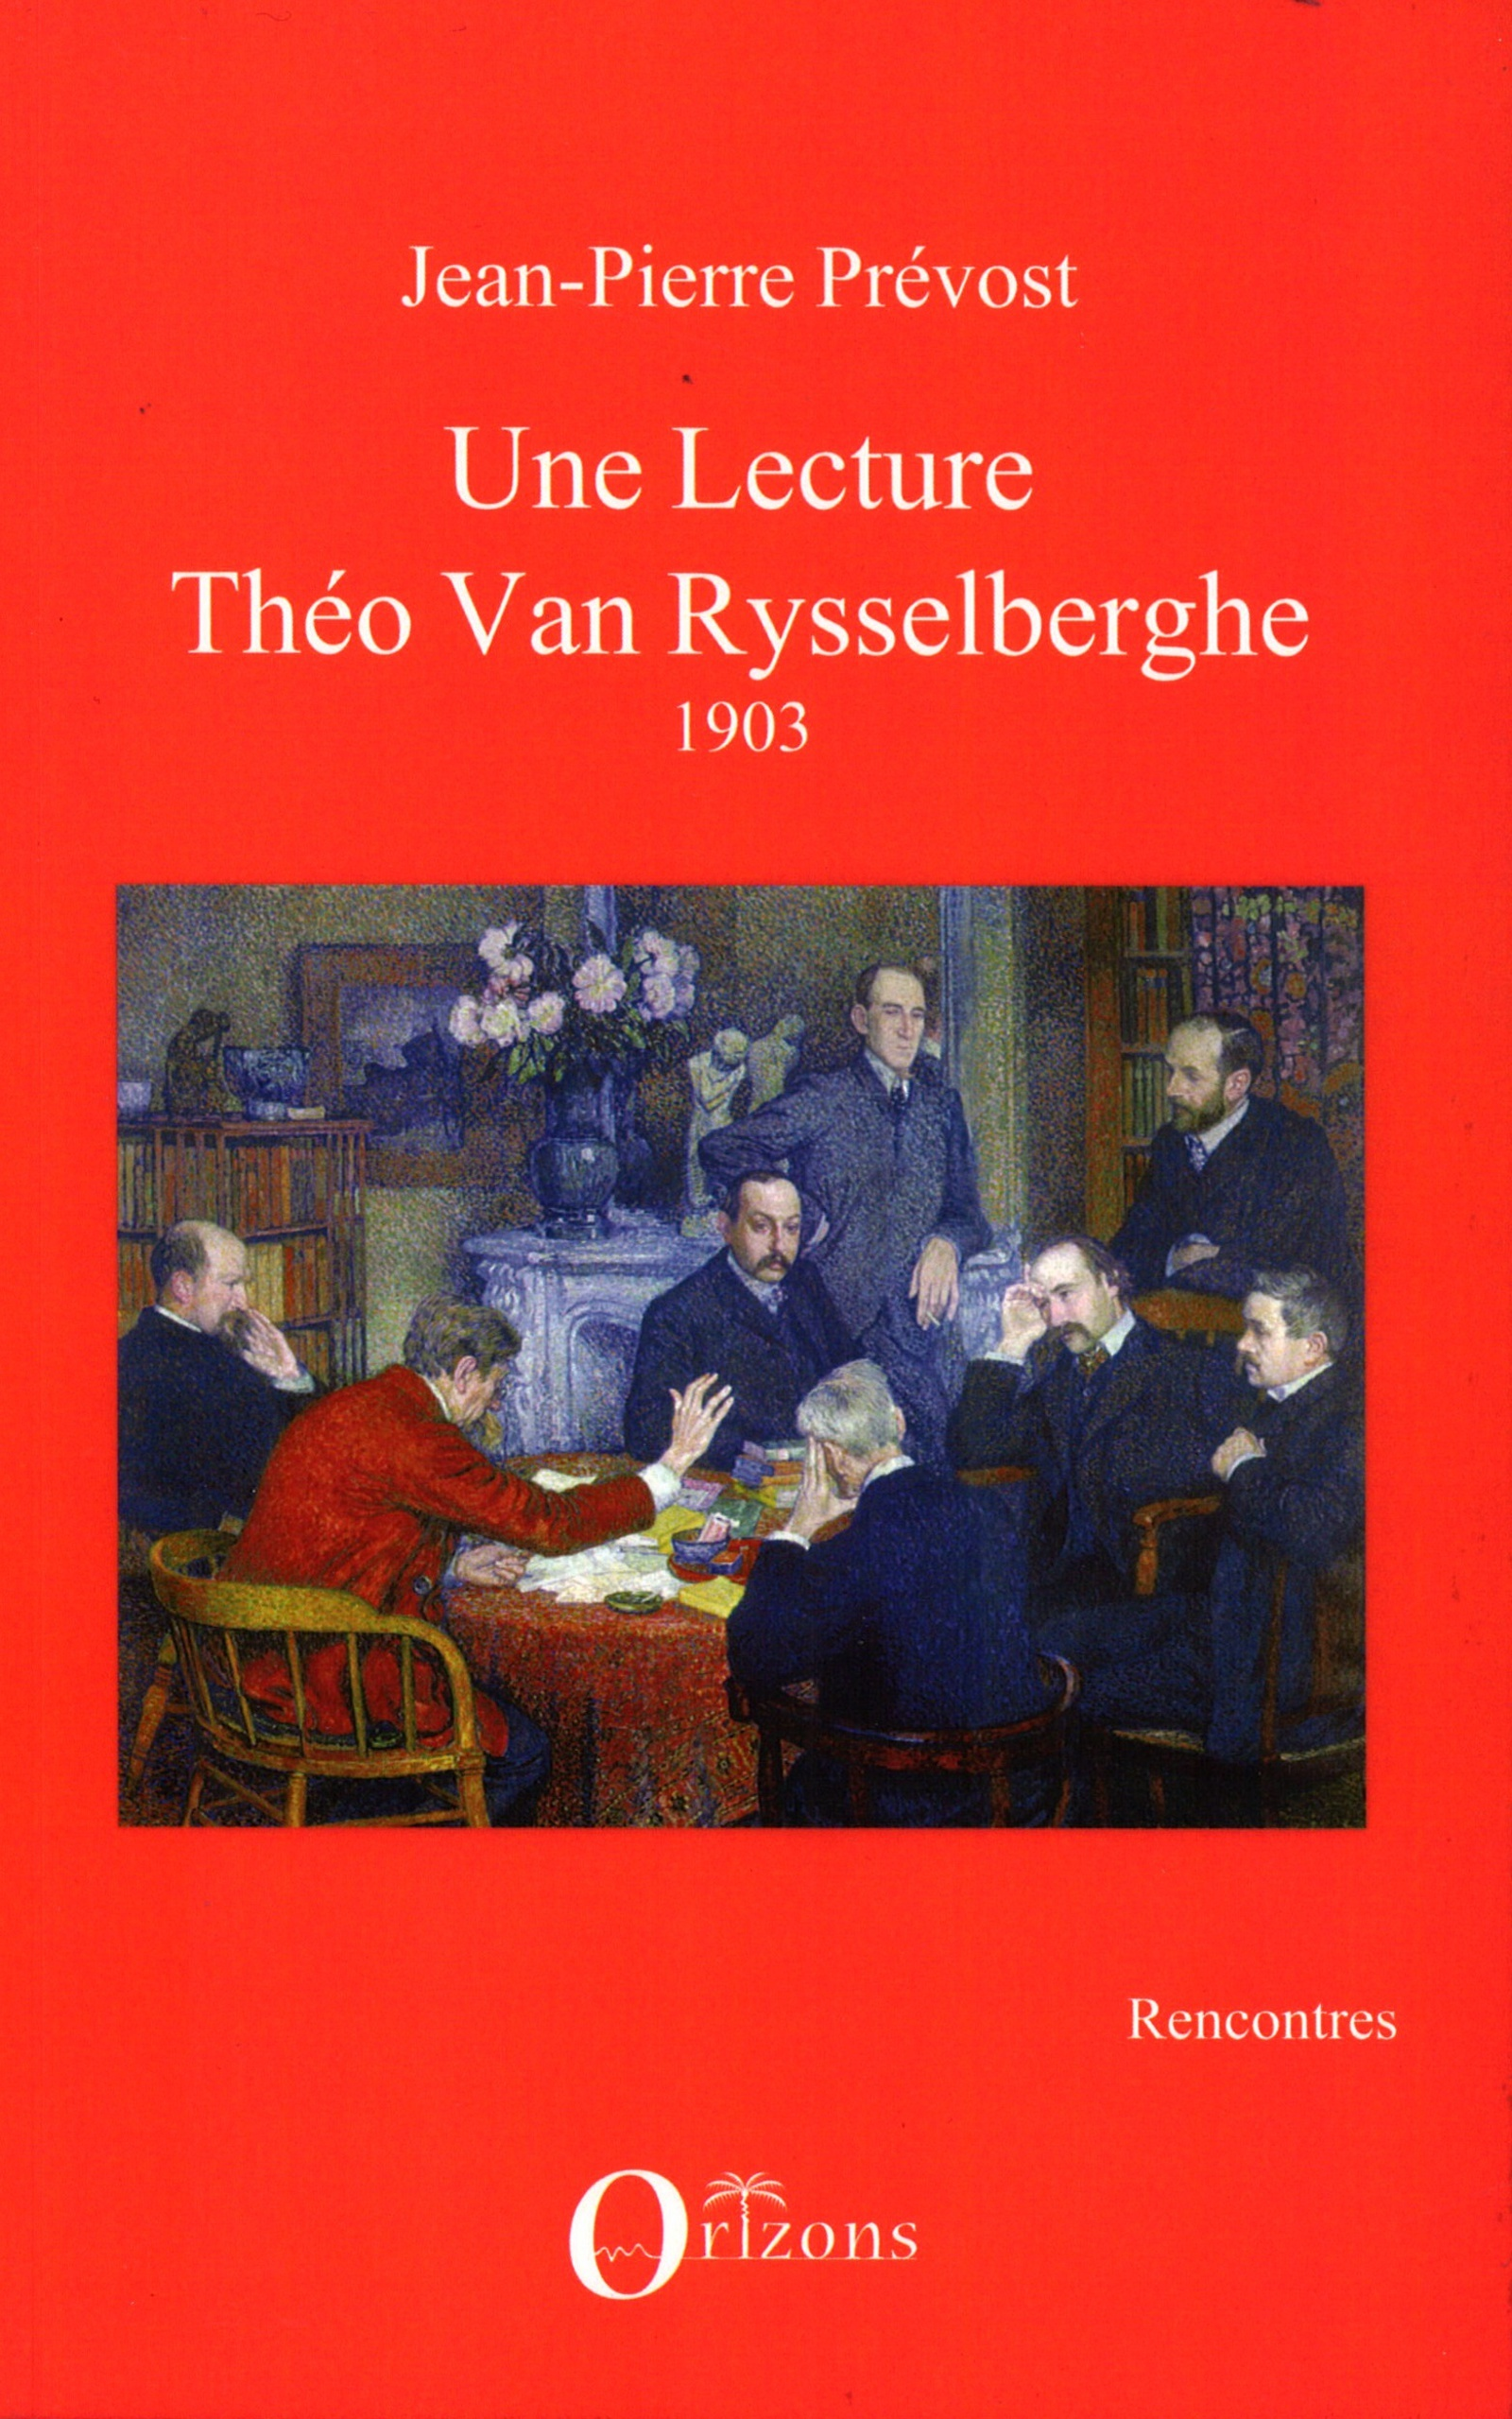 UNE LECTURE - THEO VAN RYSSELBERGHE - 1903